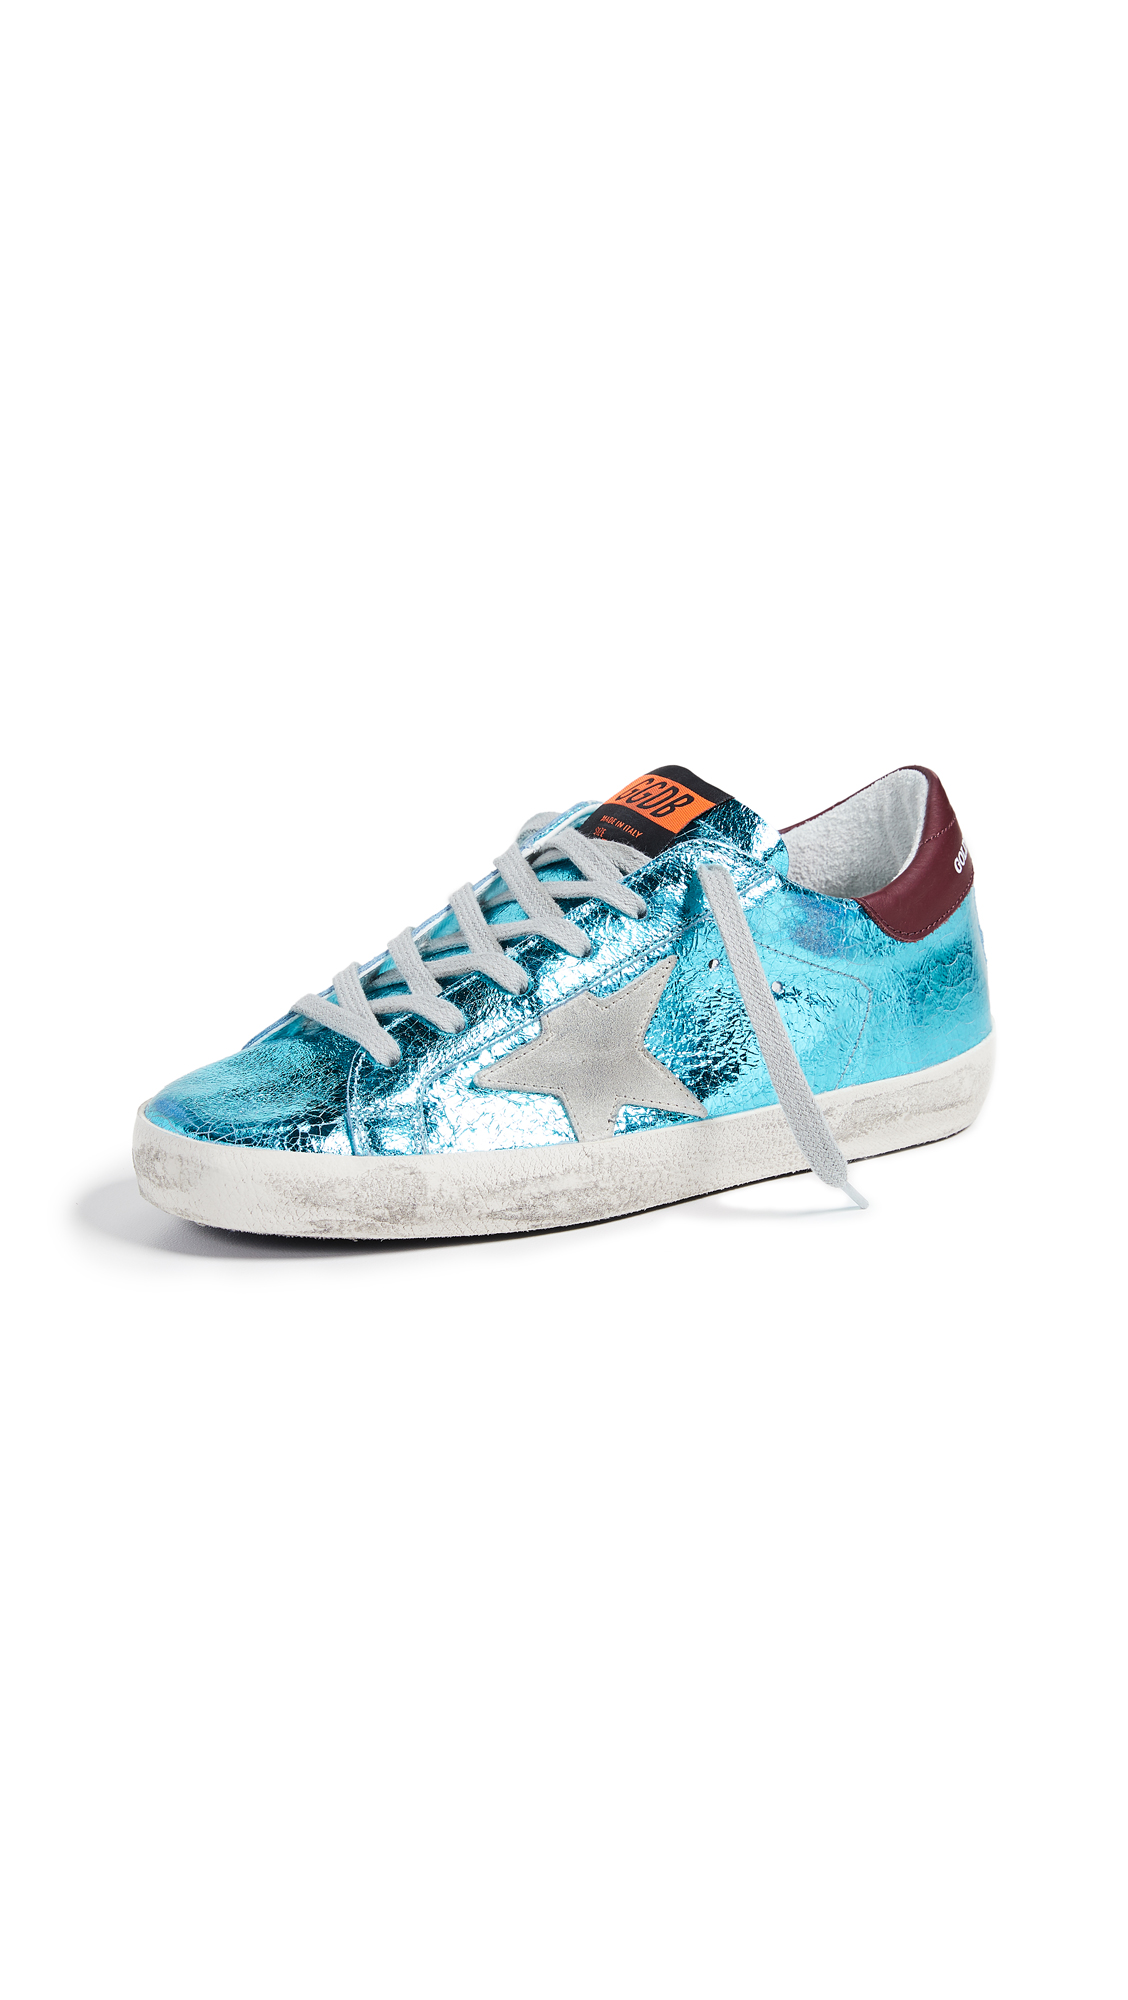 Golden Goose Superstar Sneakers - Metallic Aquamarine